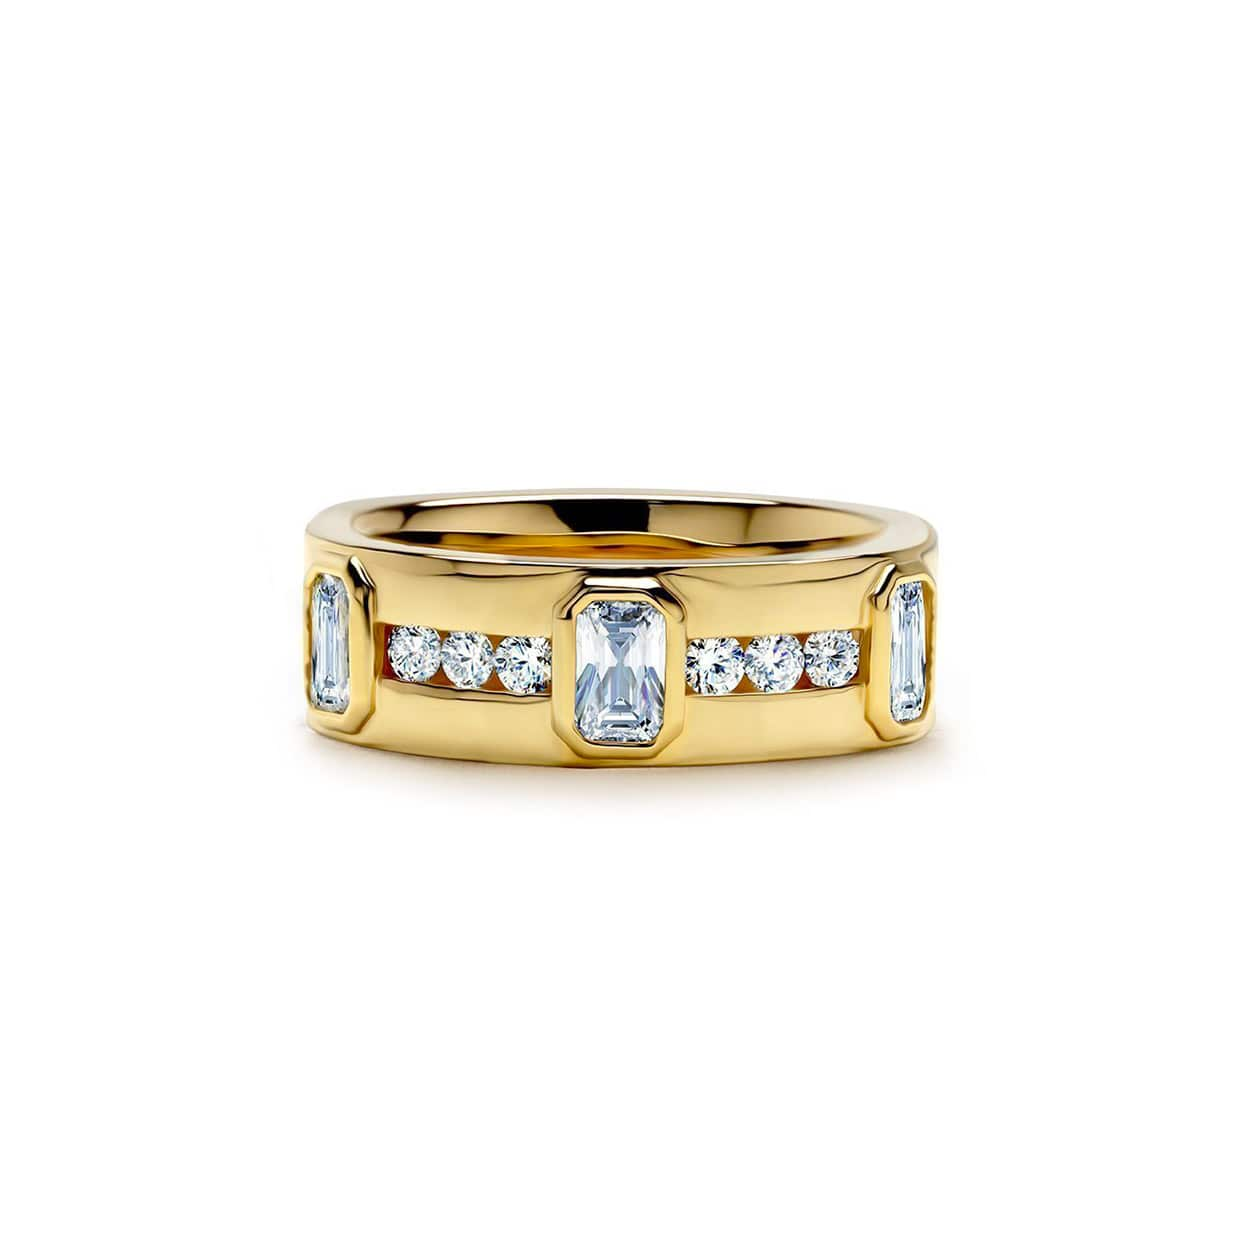 Abelstedt A Gold Wide Ring